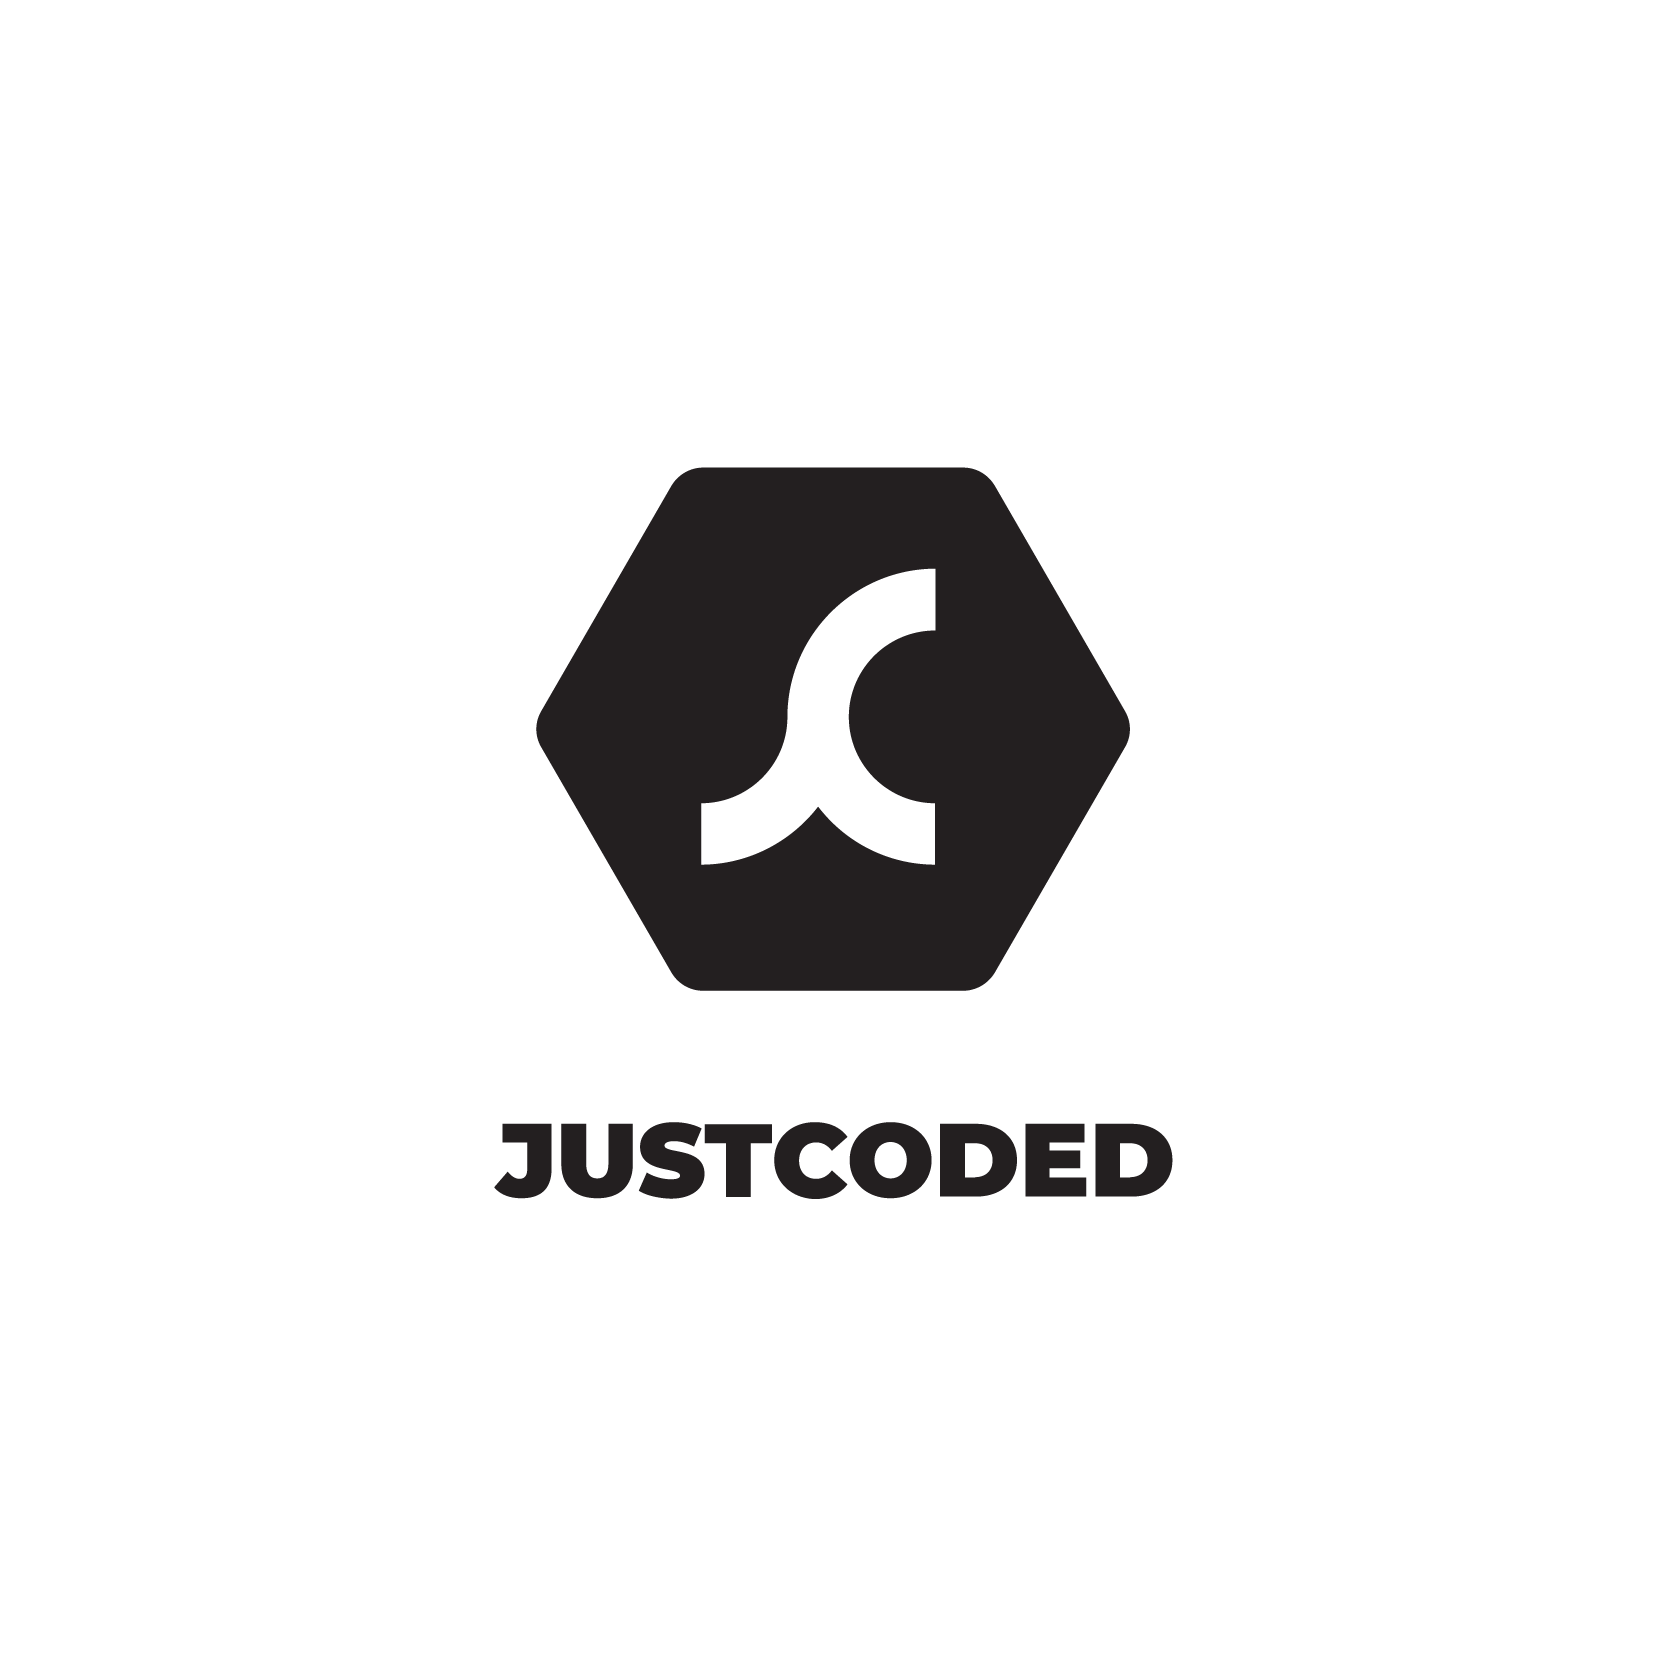 JustCoded Client Logo